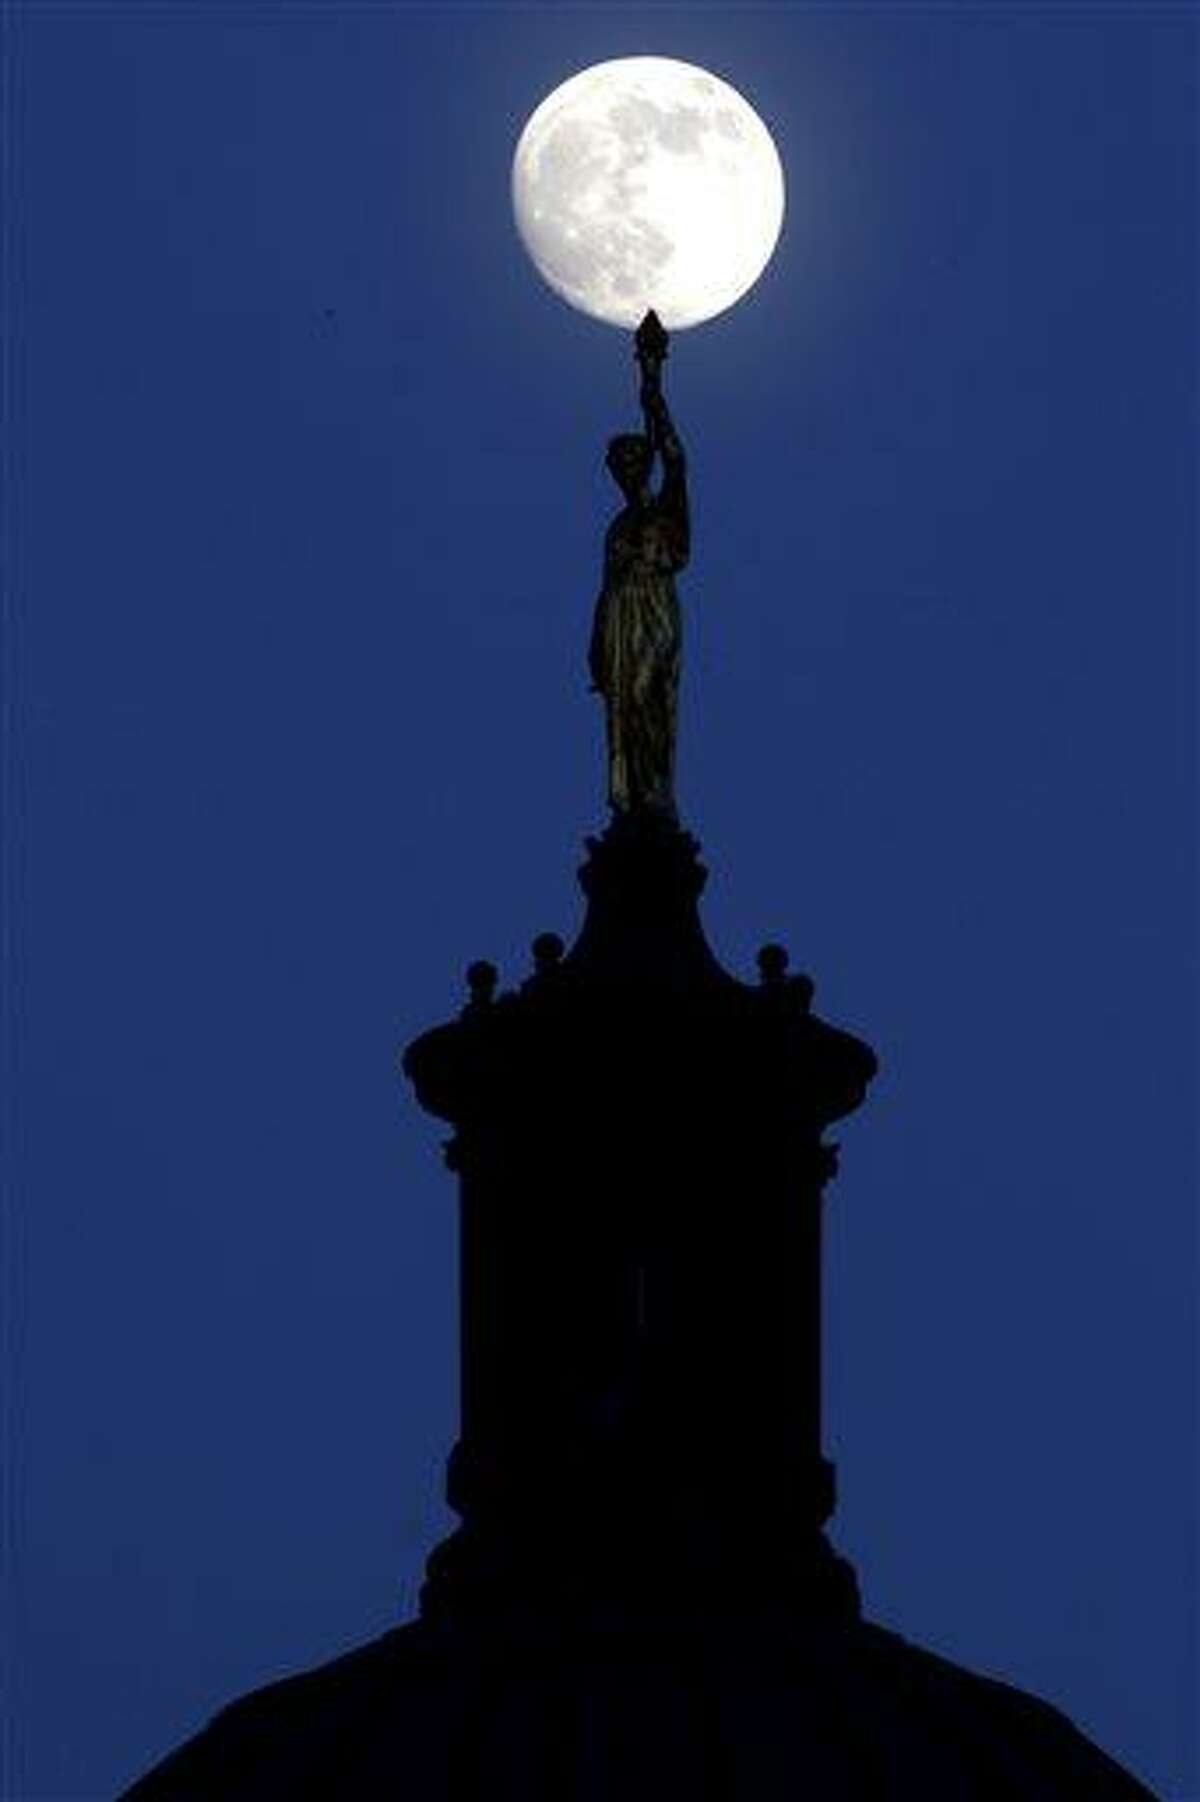 The moon in its waxing gibbous stage shines over a statue entitled